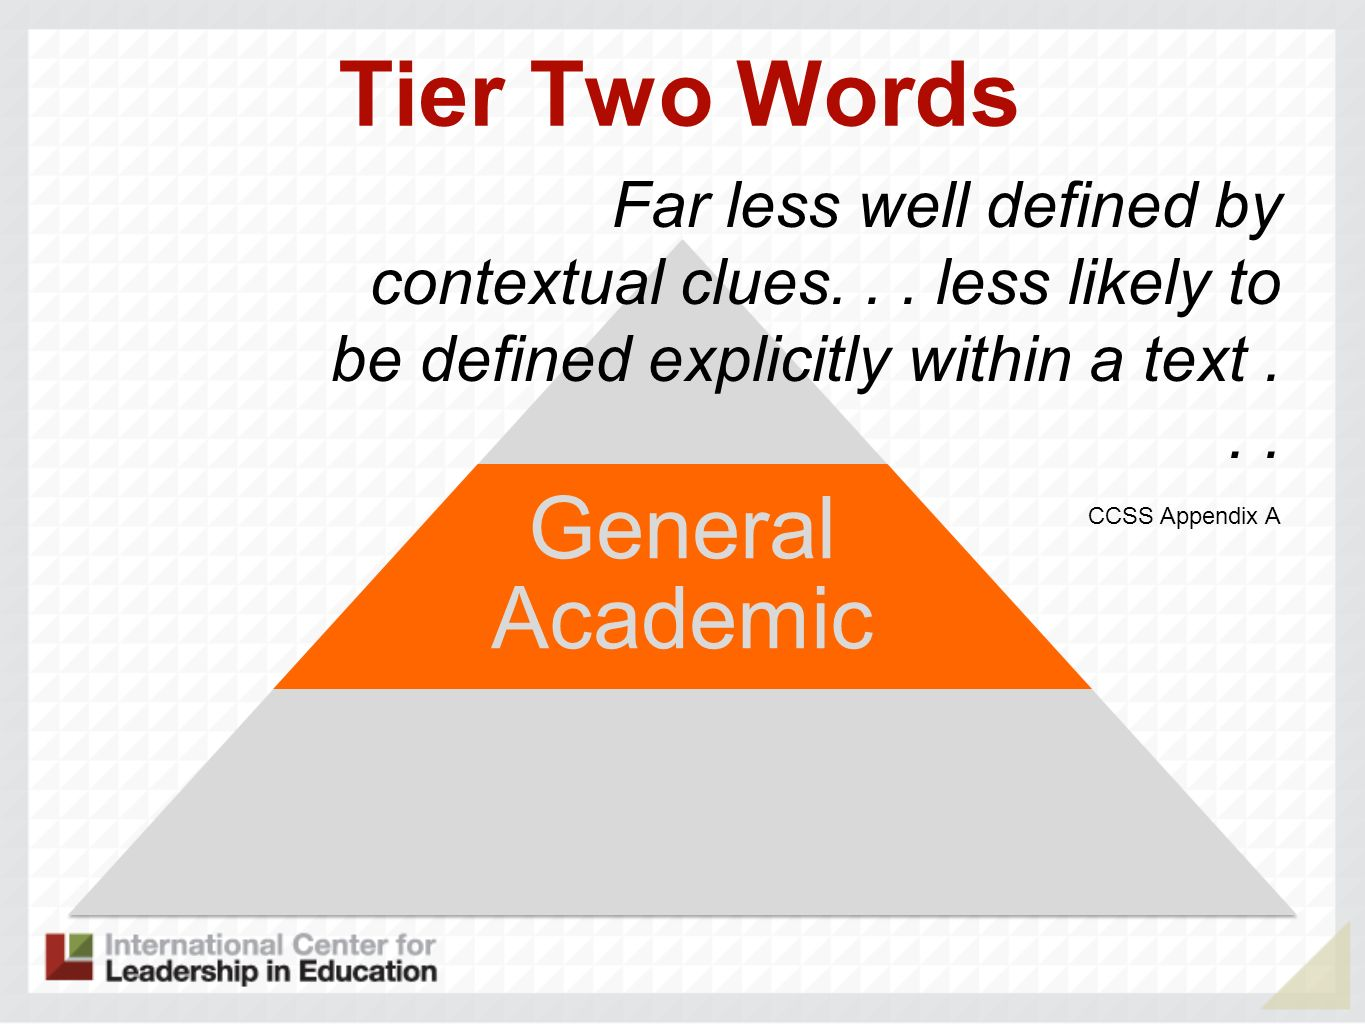 Tier Two Words Far less well defined by contextual clues... less likely to be defined explicitly within a text... CCSS Appendix A